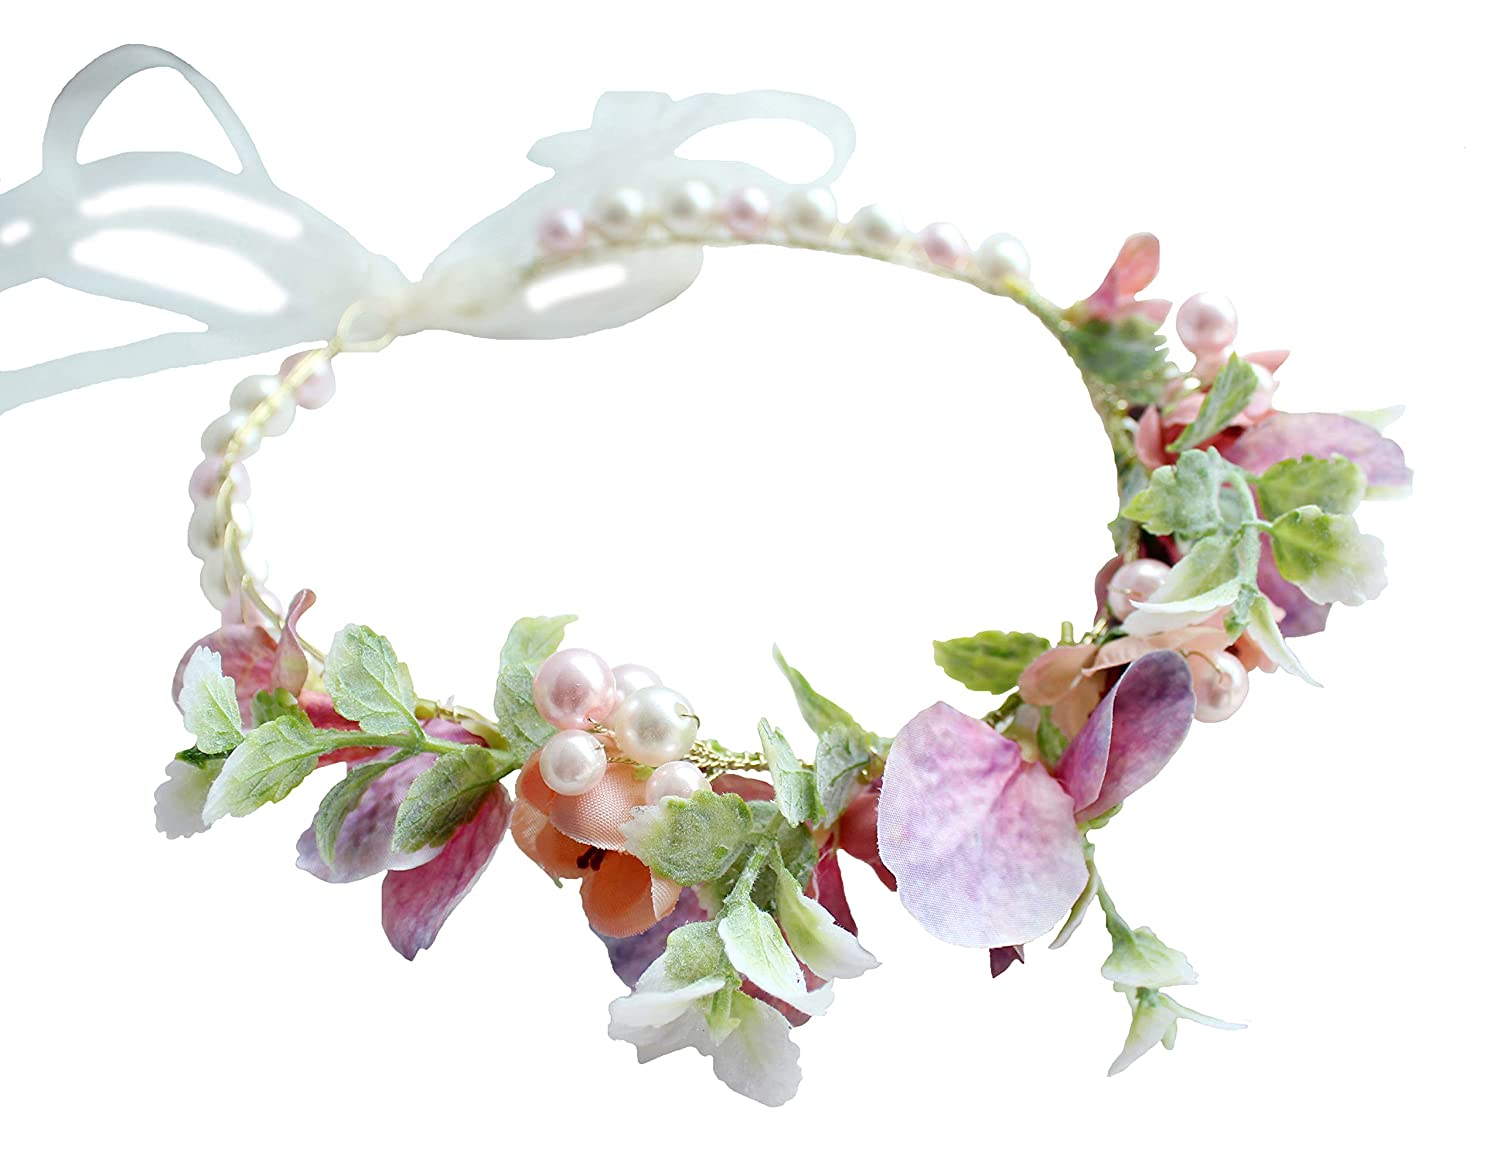 Pearl Flower Crown Floral Garland Headband Flower Halo Headpiece Hair Wreath Boho with Ribbon Wedding Party Photos Festival Pink by Vivivalue